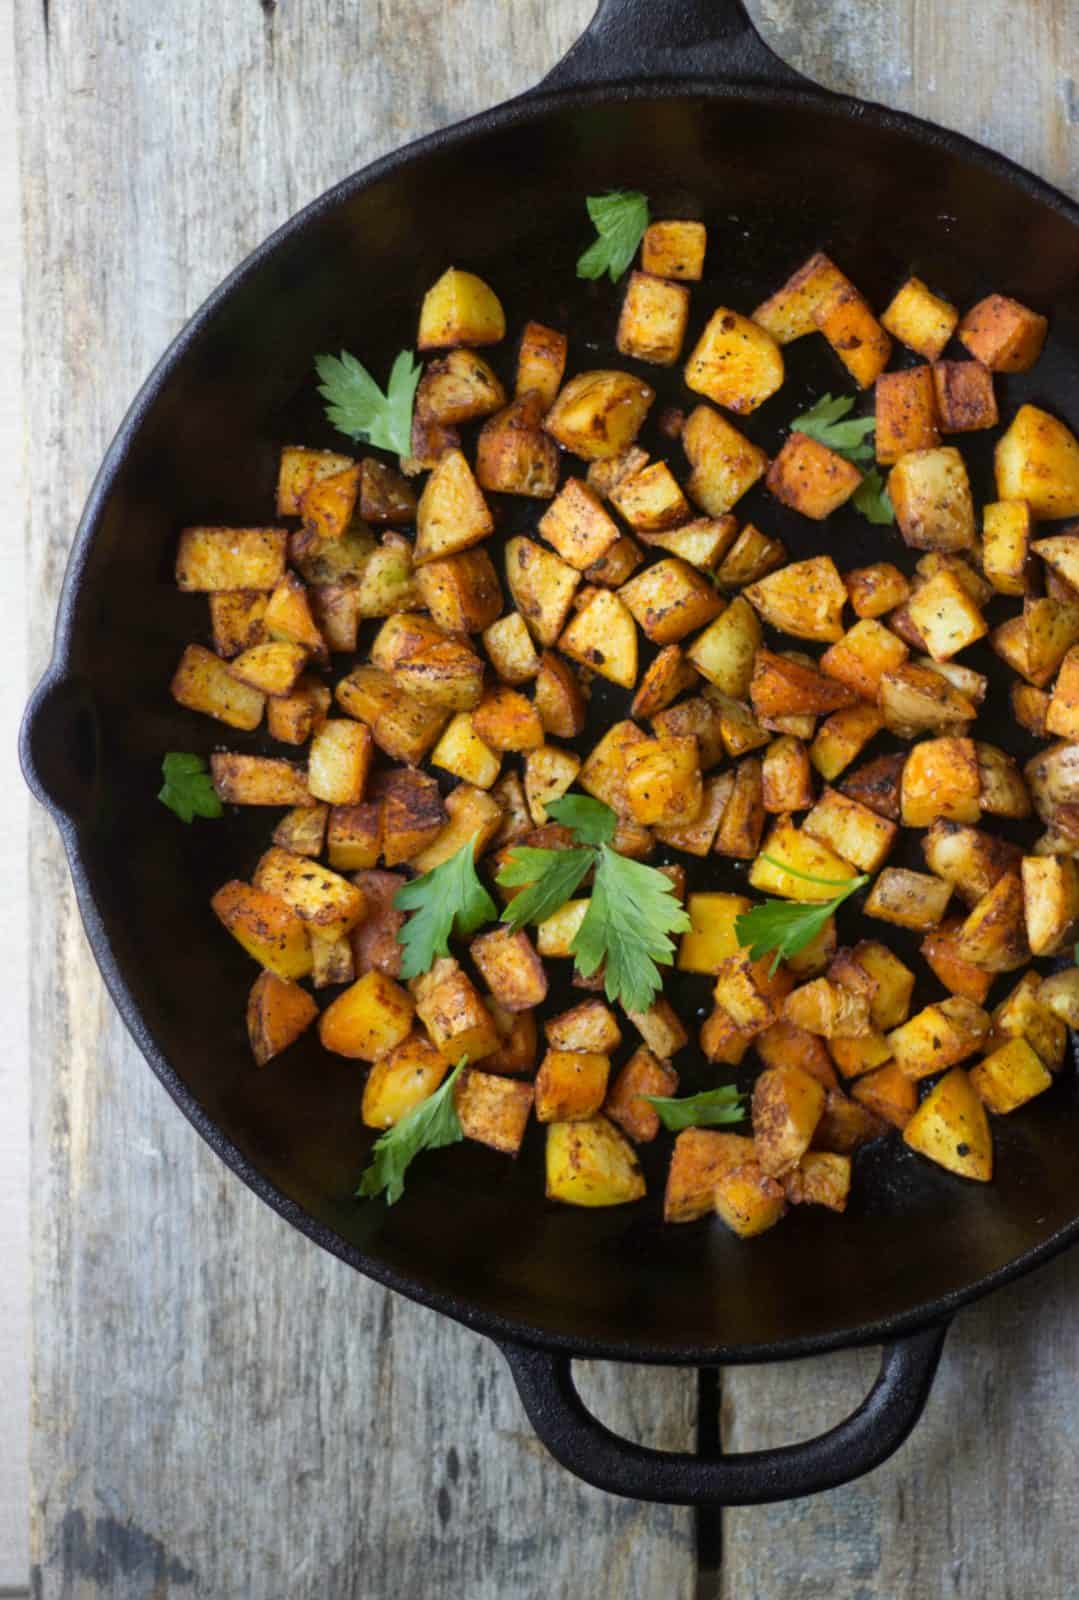 Crispy Breakfast Potatoes in a cast iron skillet as a healthy recipe for beginner cooks.